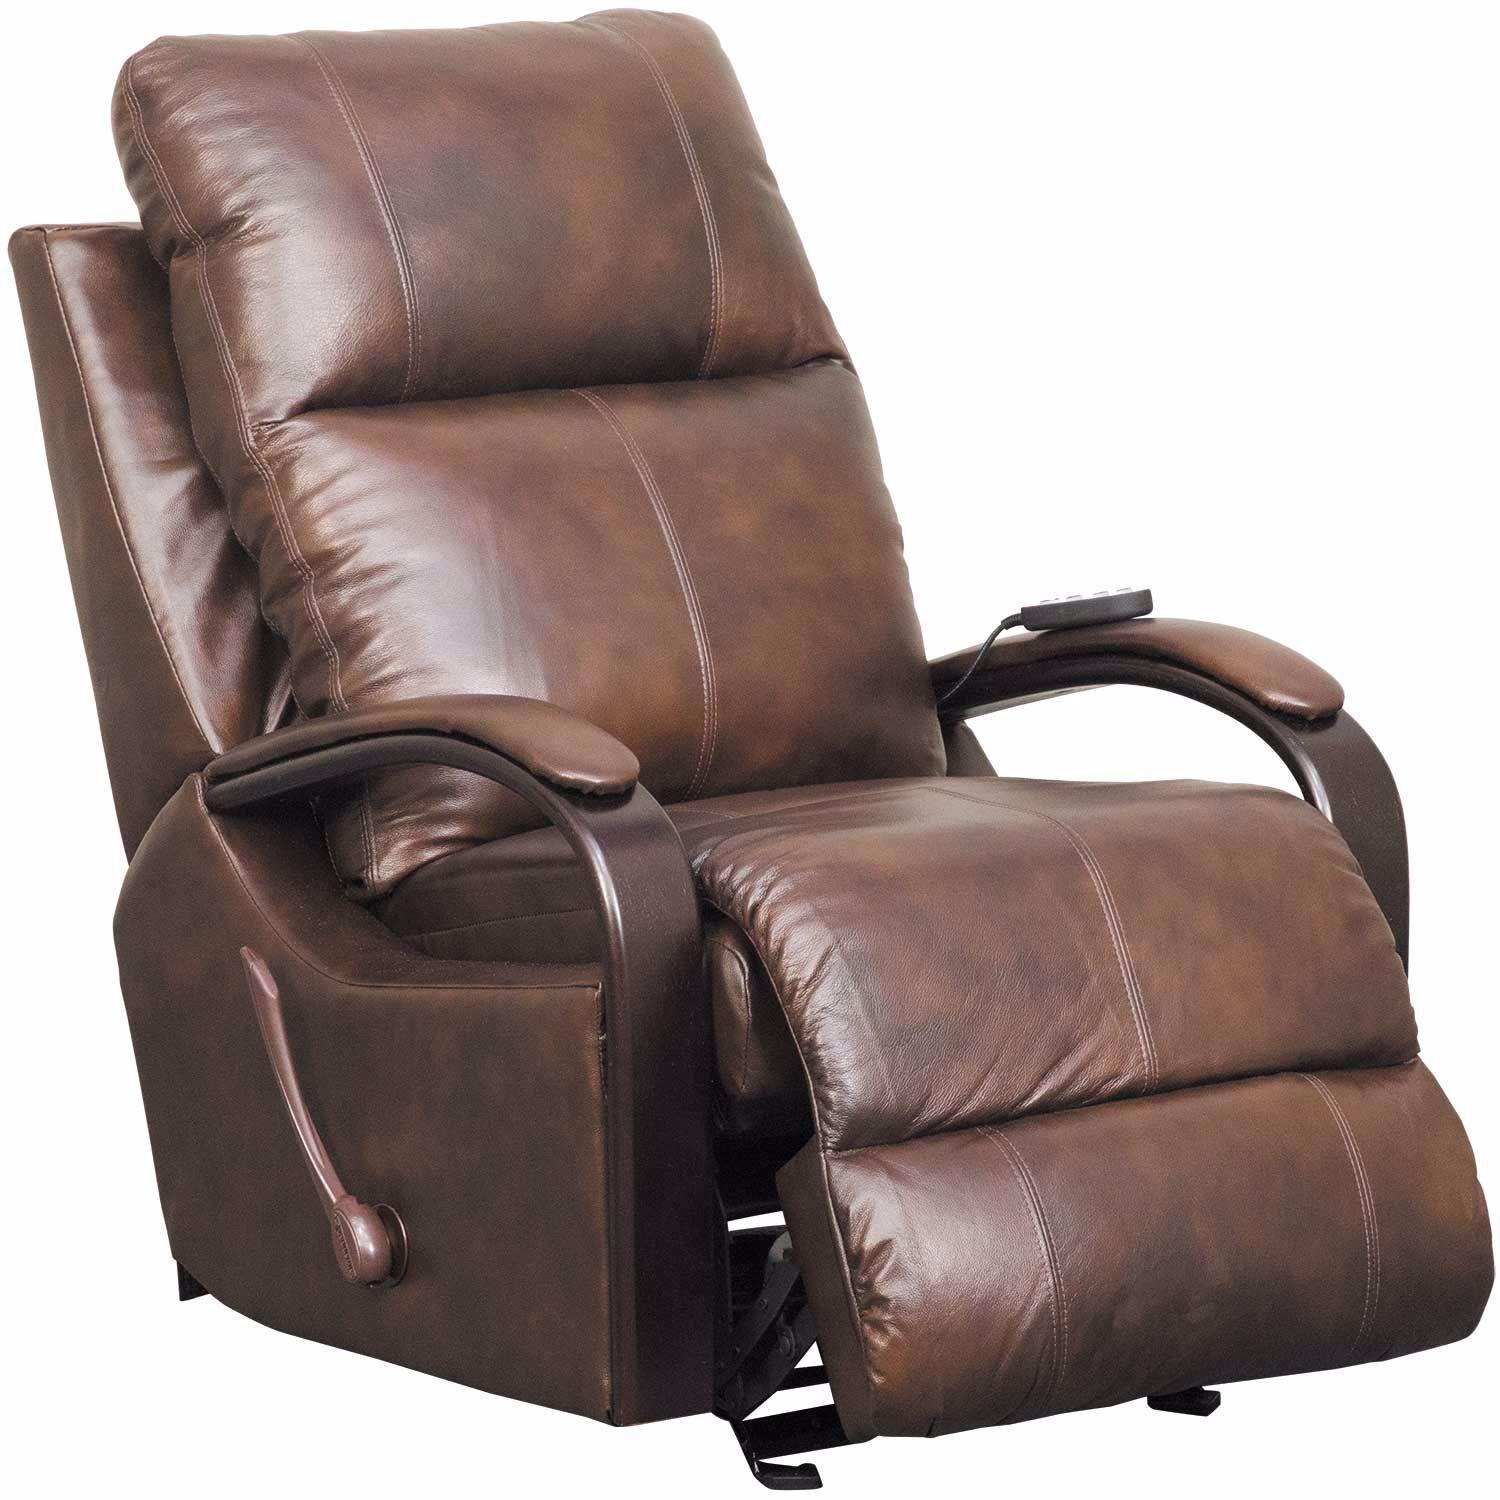 Picture of Gianni Italian Leather Glider